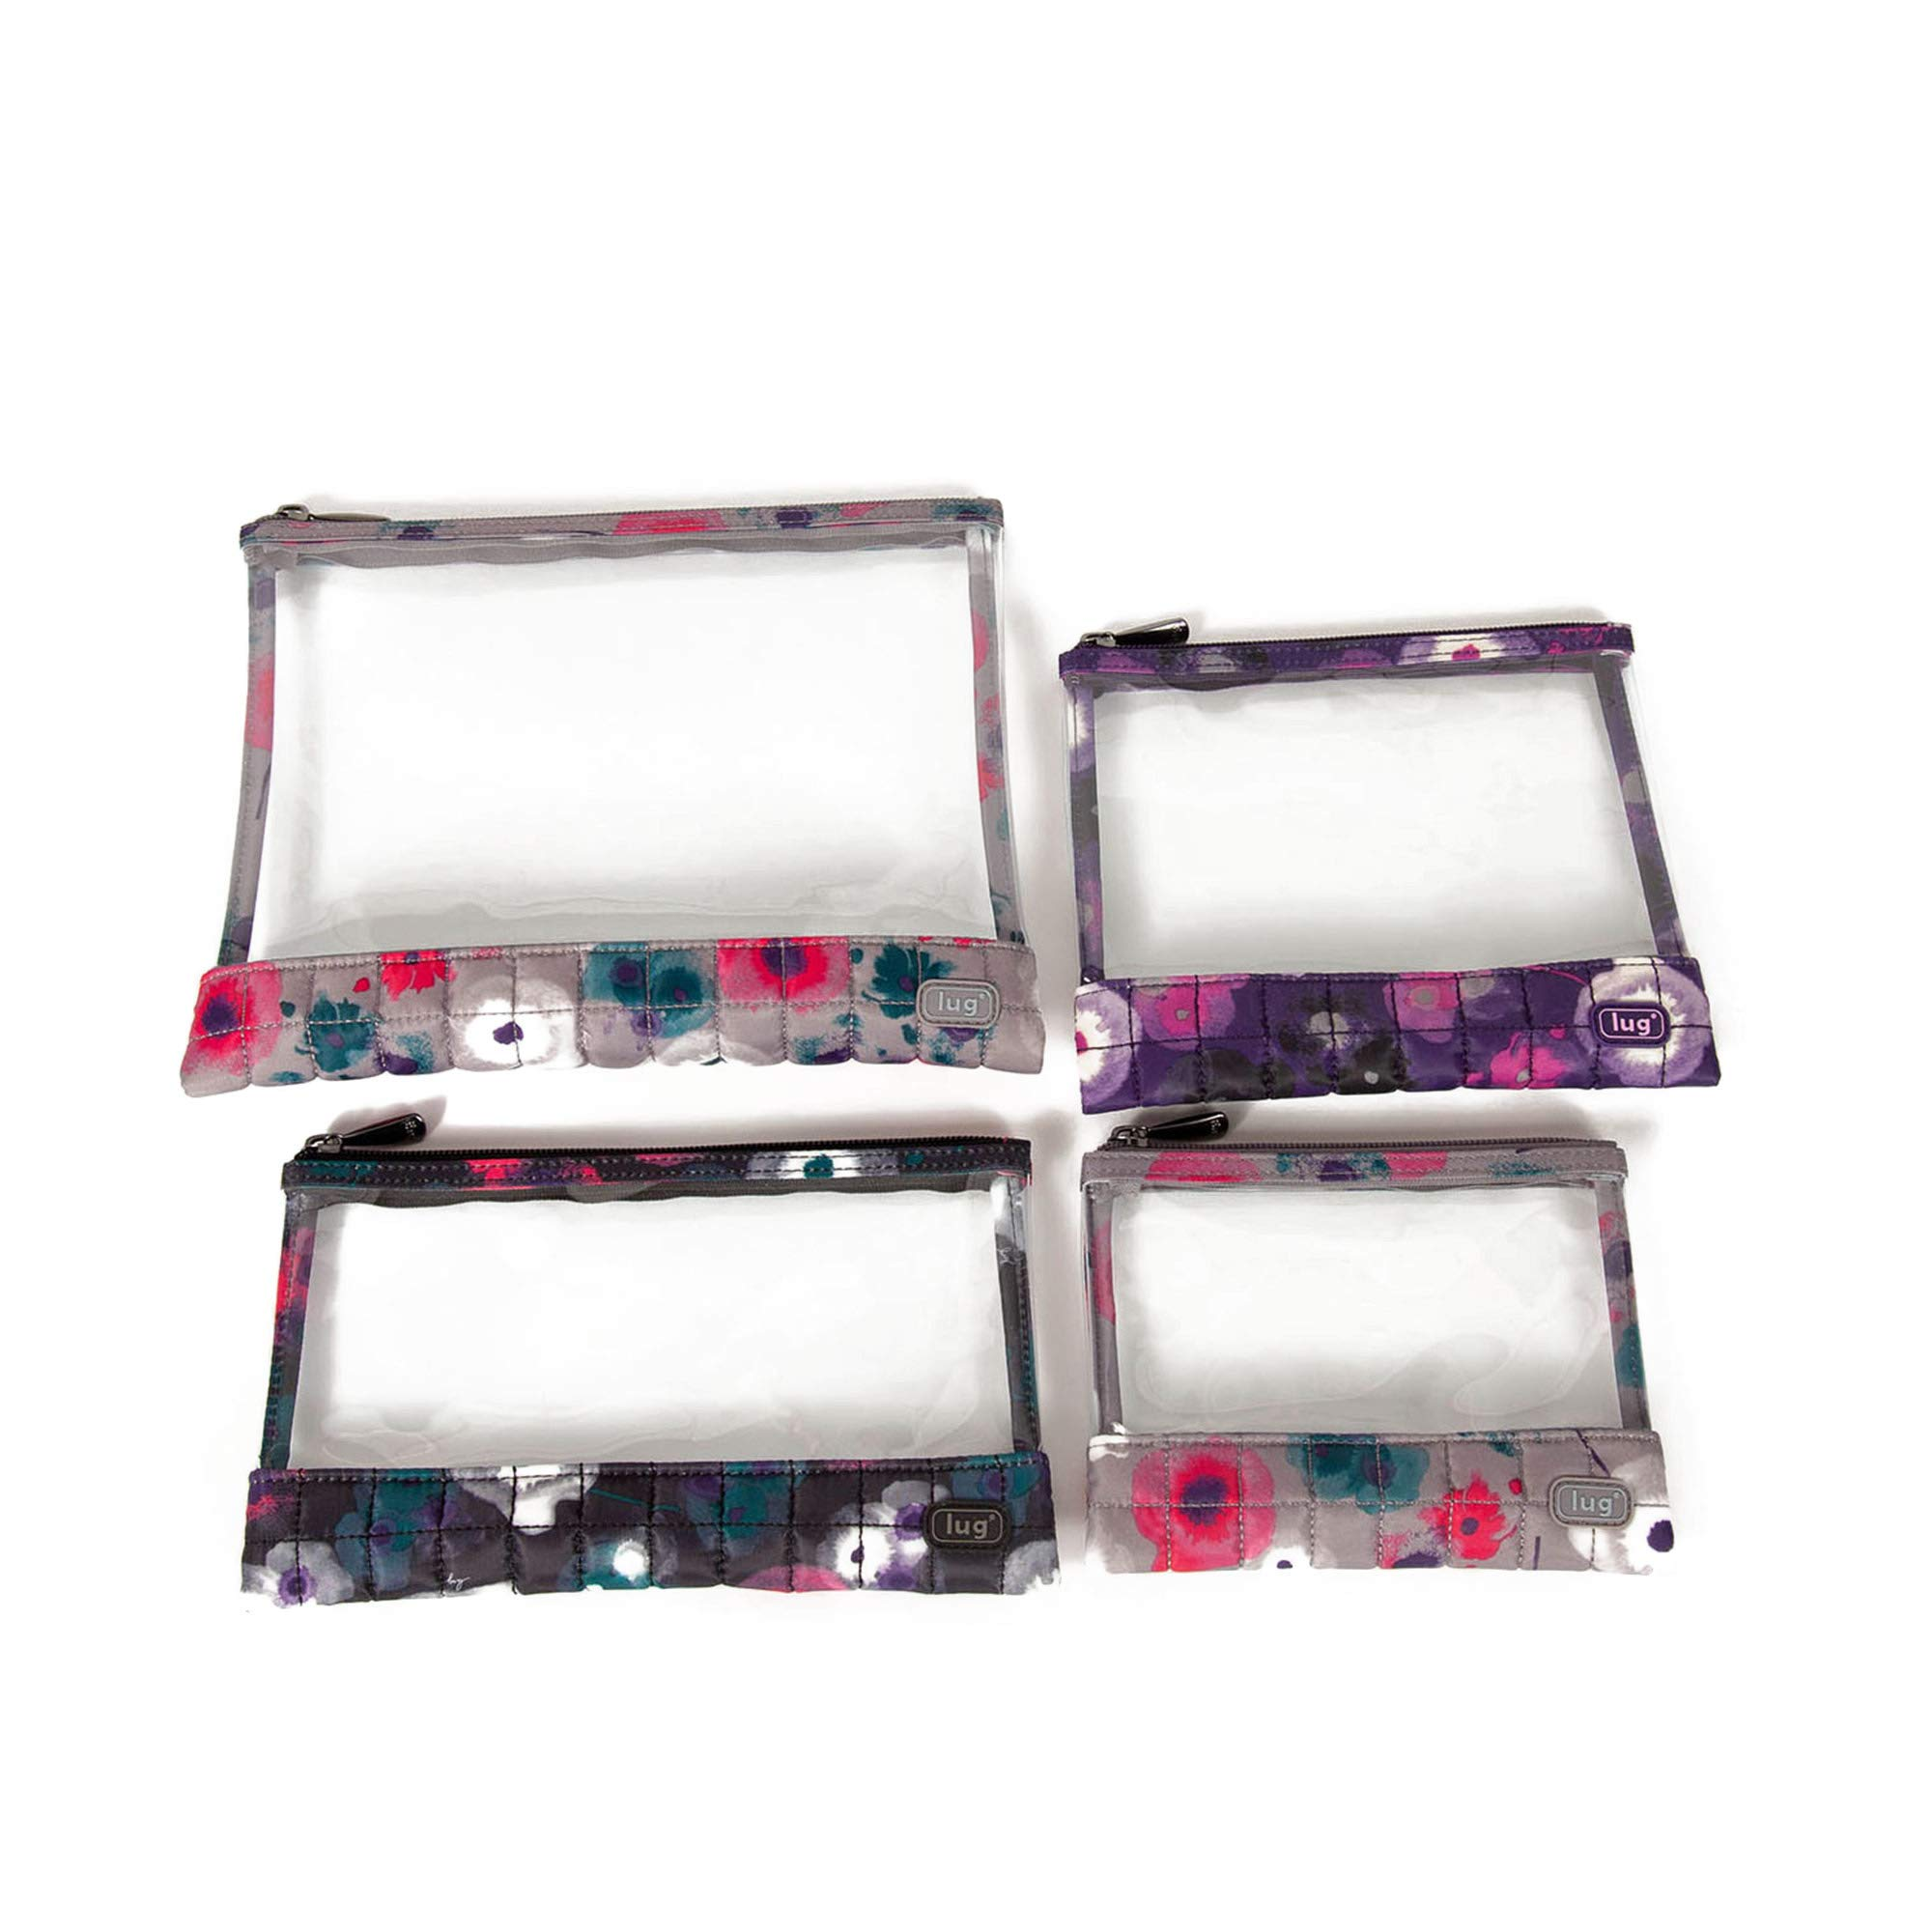 Lug Women's Clearview Envelopes 4 Piece Set, Watercolor, Water Color by Lug